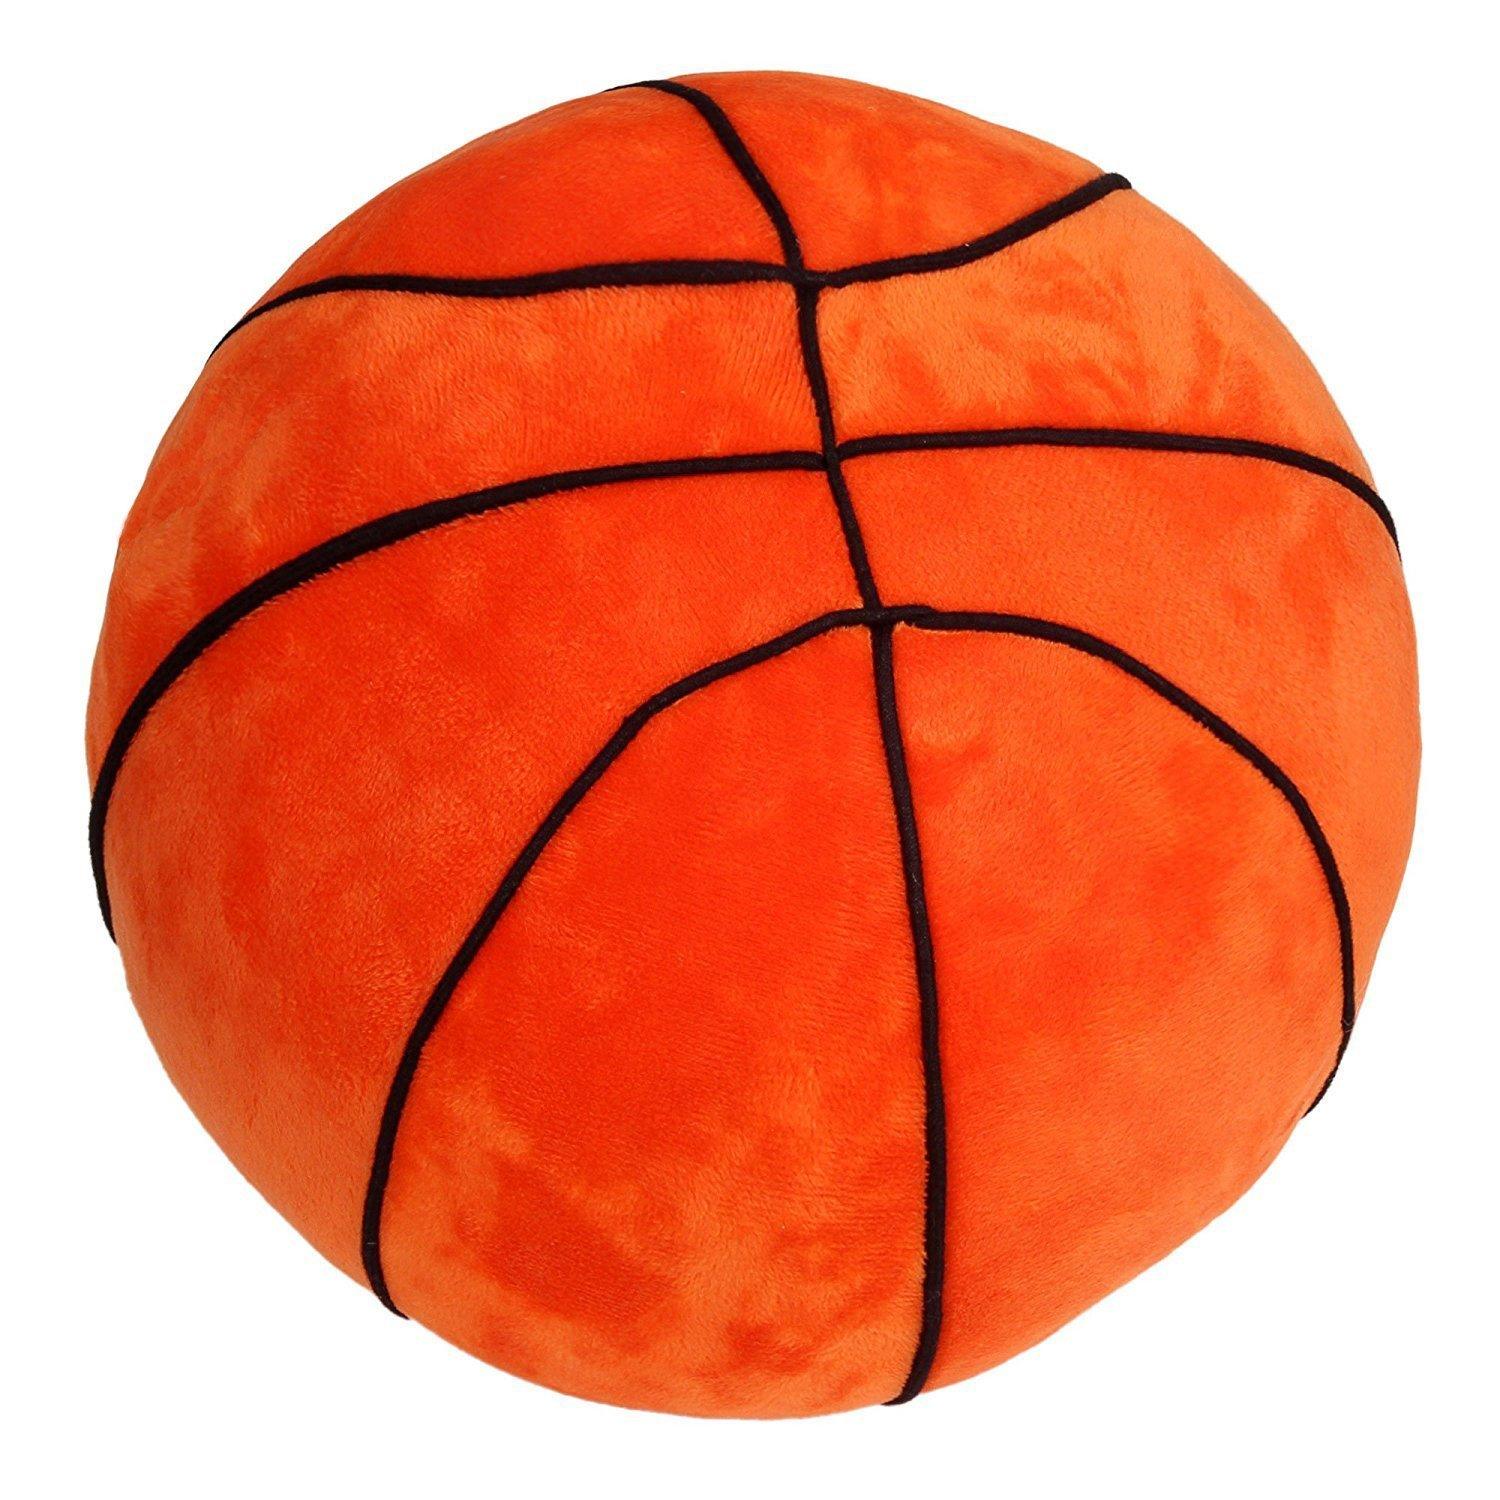 "Tplay Basketball Pillow Fluffy Stuffed Plush Basketball Soft Durable Sports Toy Gift for Kids 9"" L X 9"" W X 9"" H"